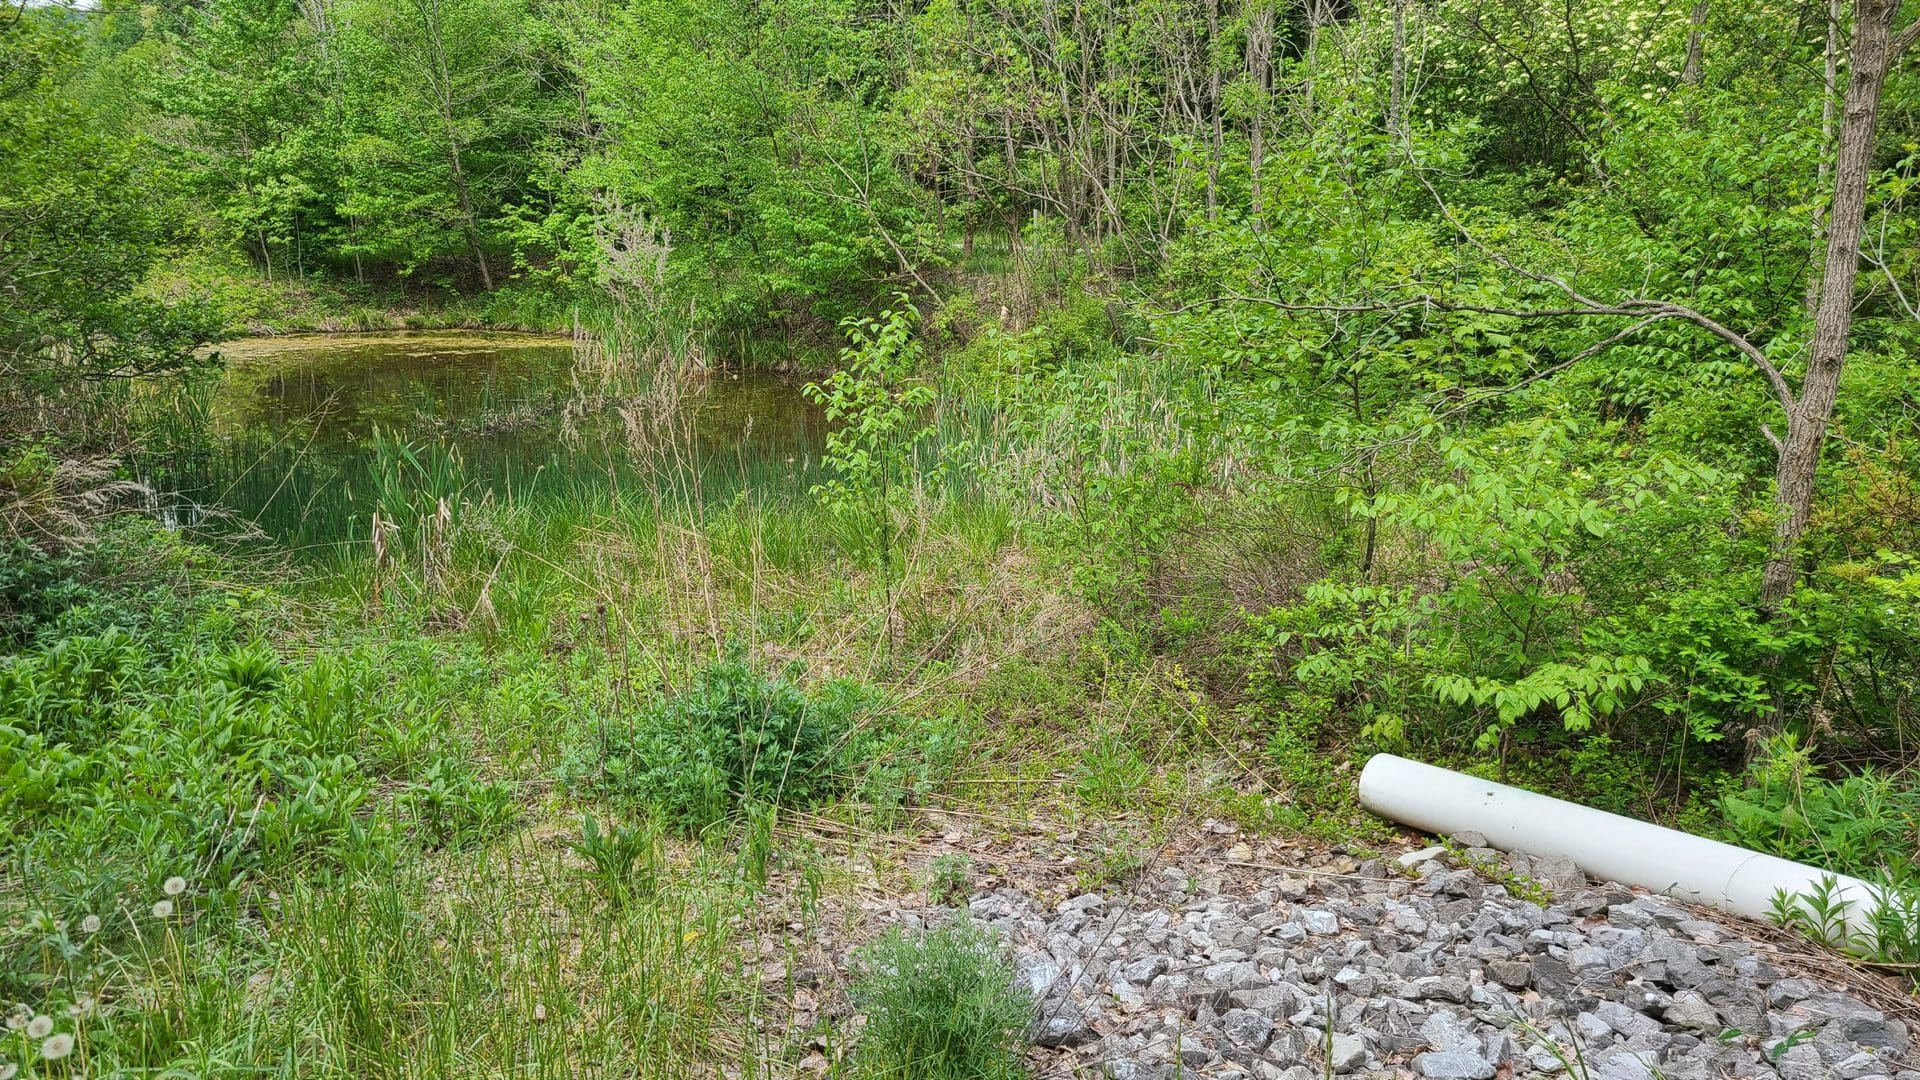 A PVC pipe is ready to drain mine discharge into a sickly-looking pond.